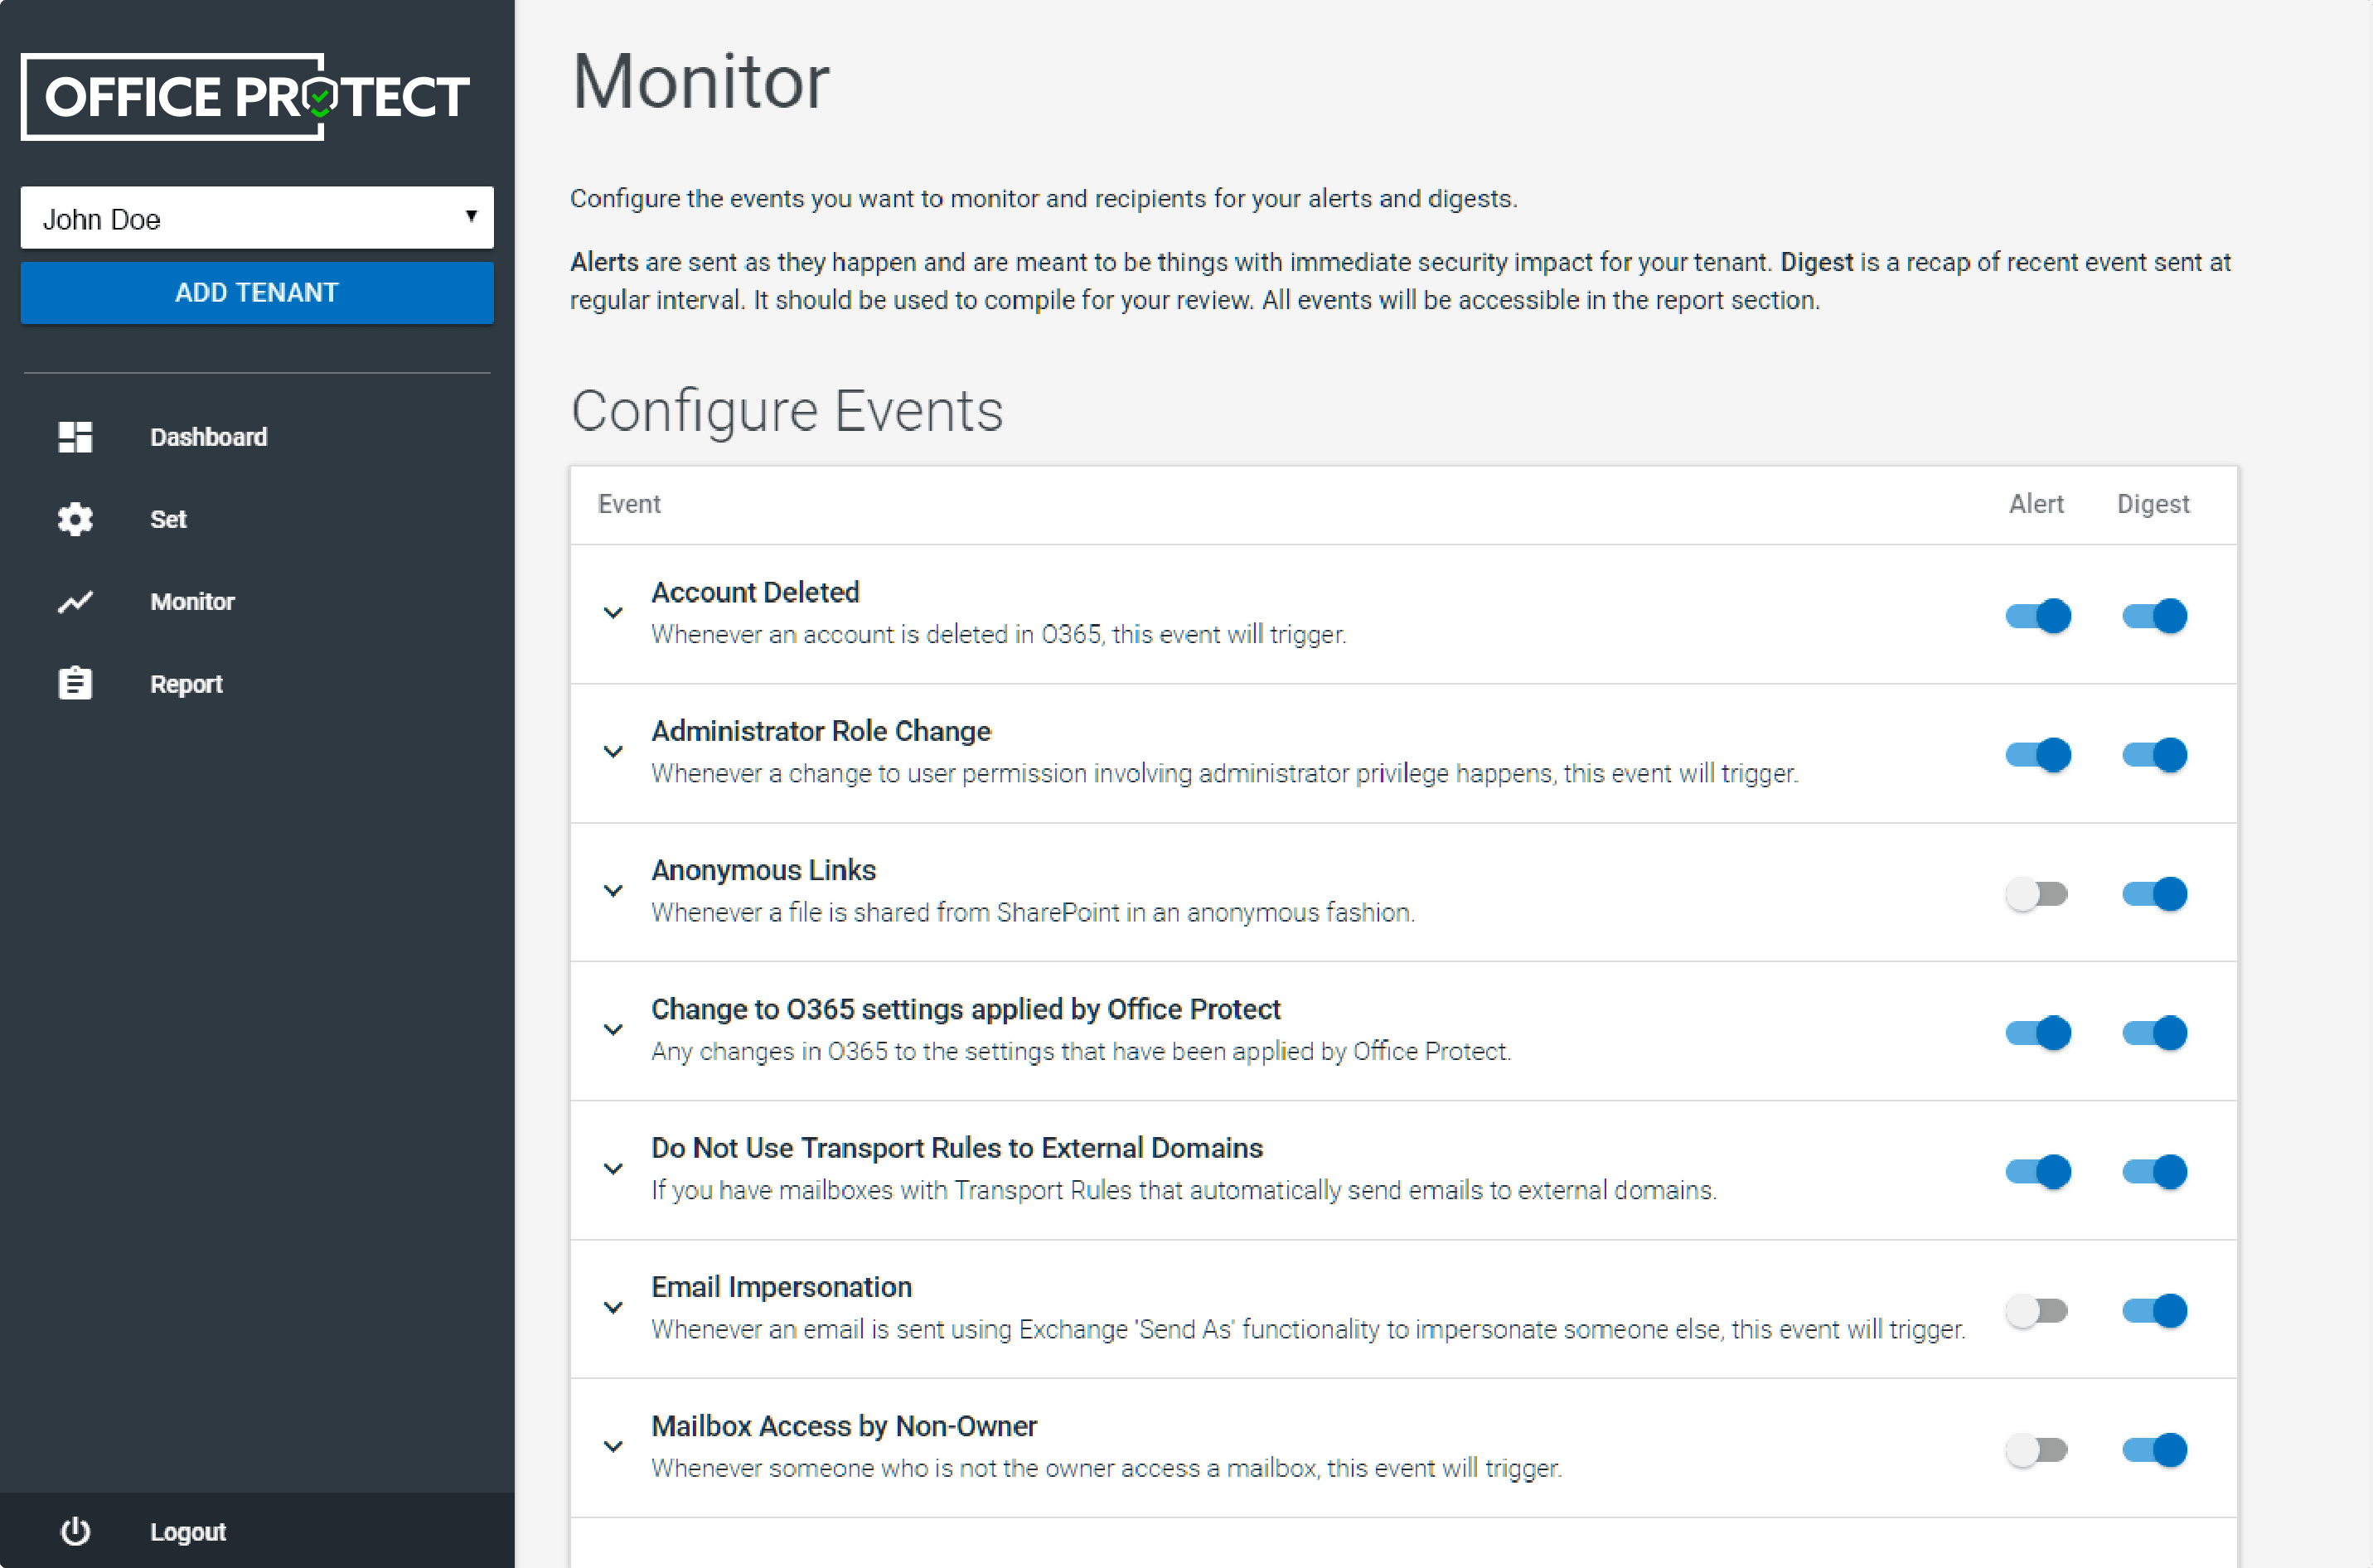 Office Protect: Monitoring & Alerts